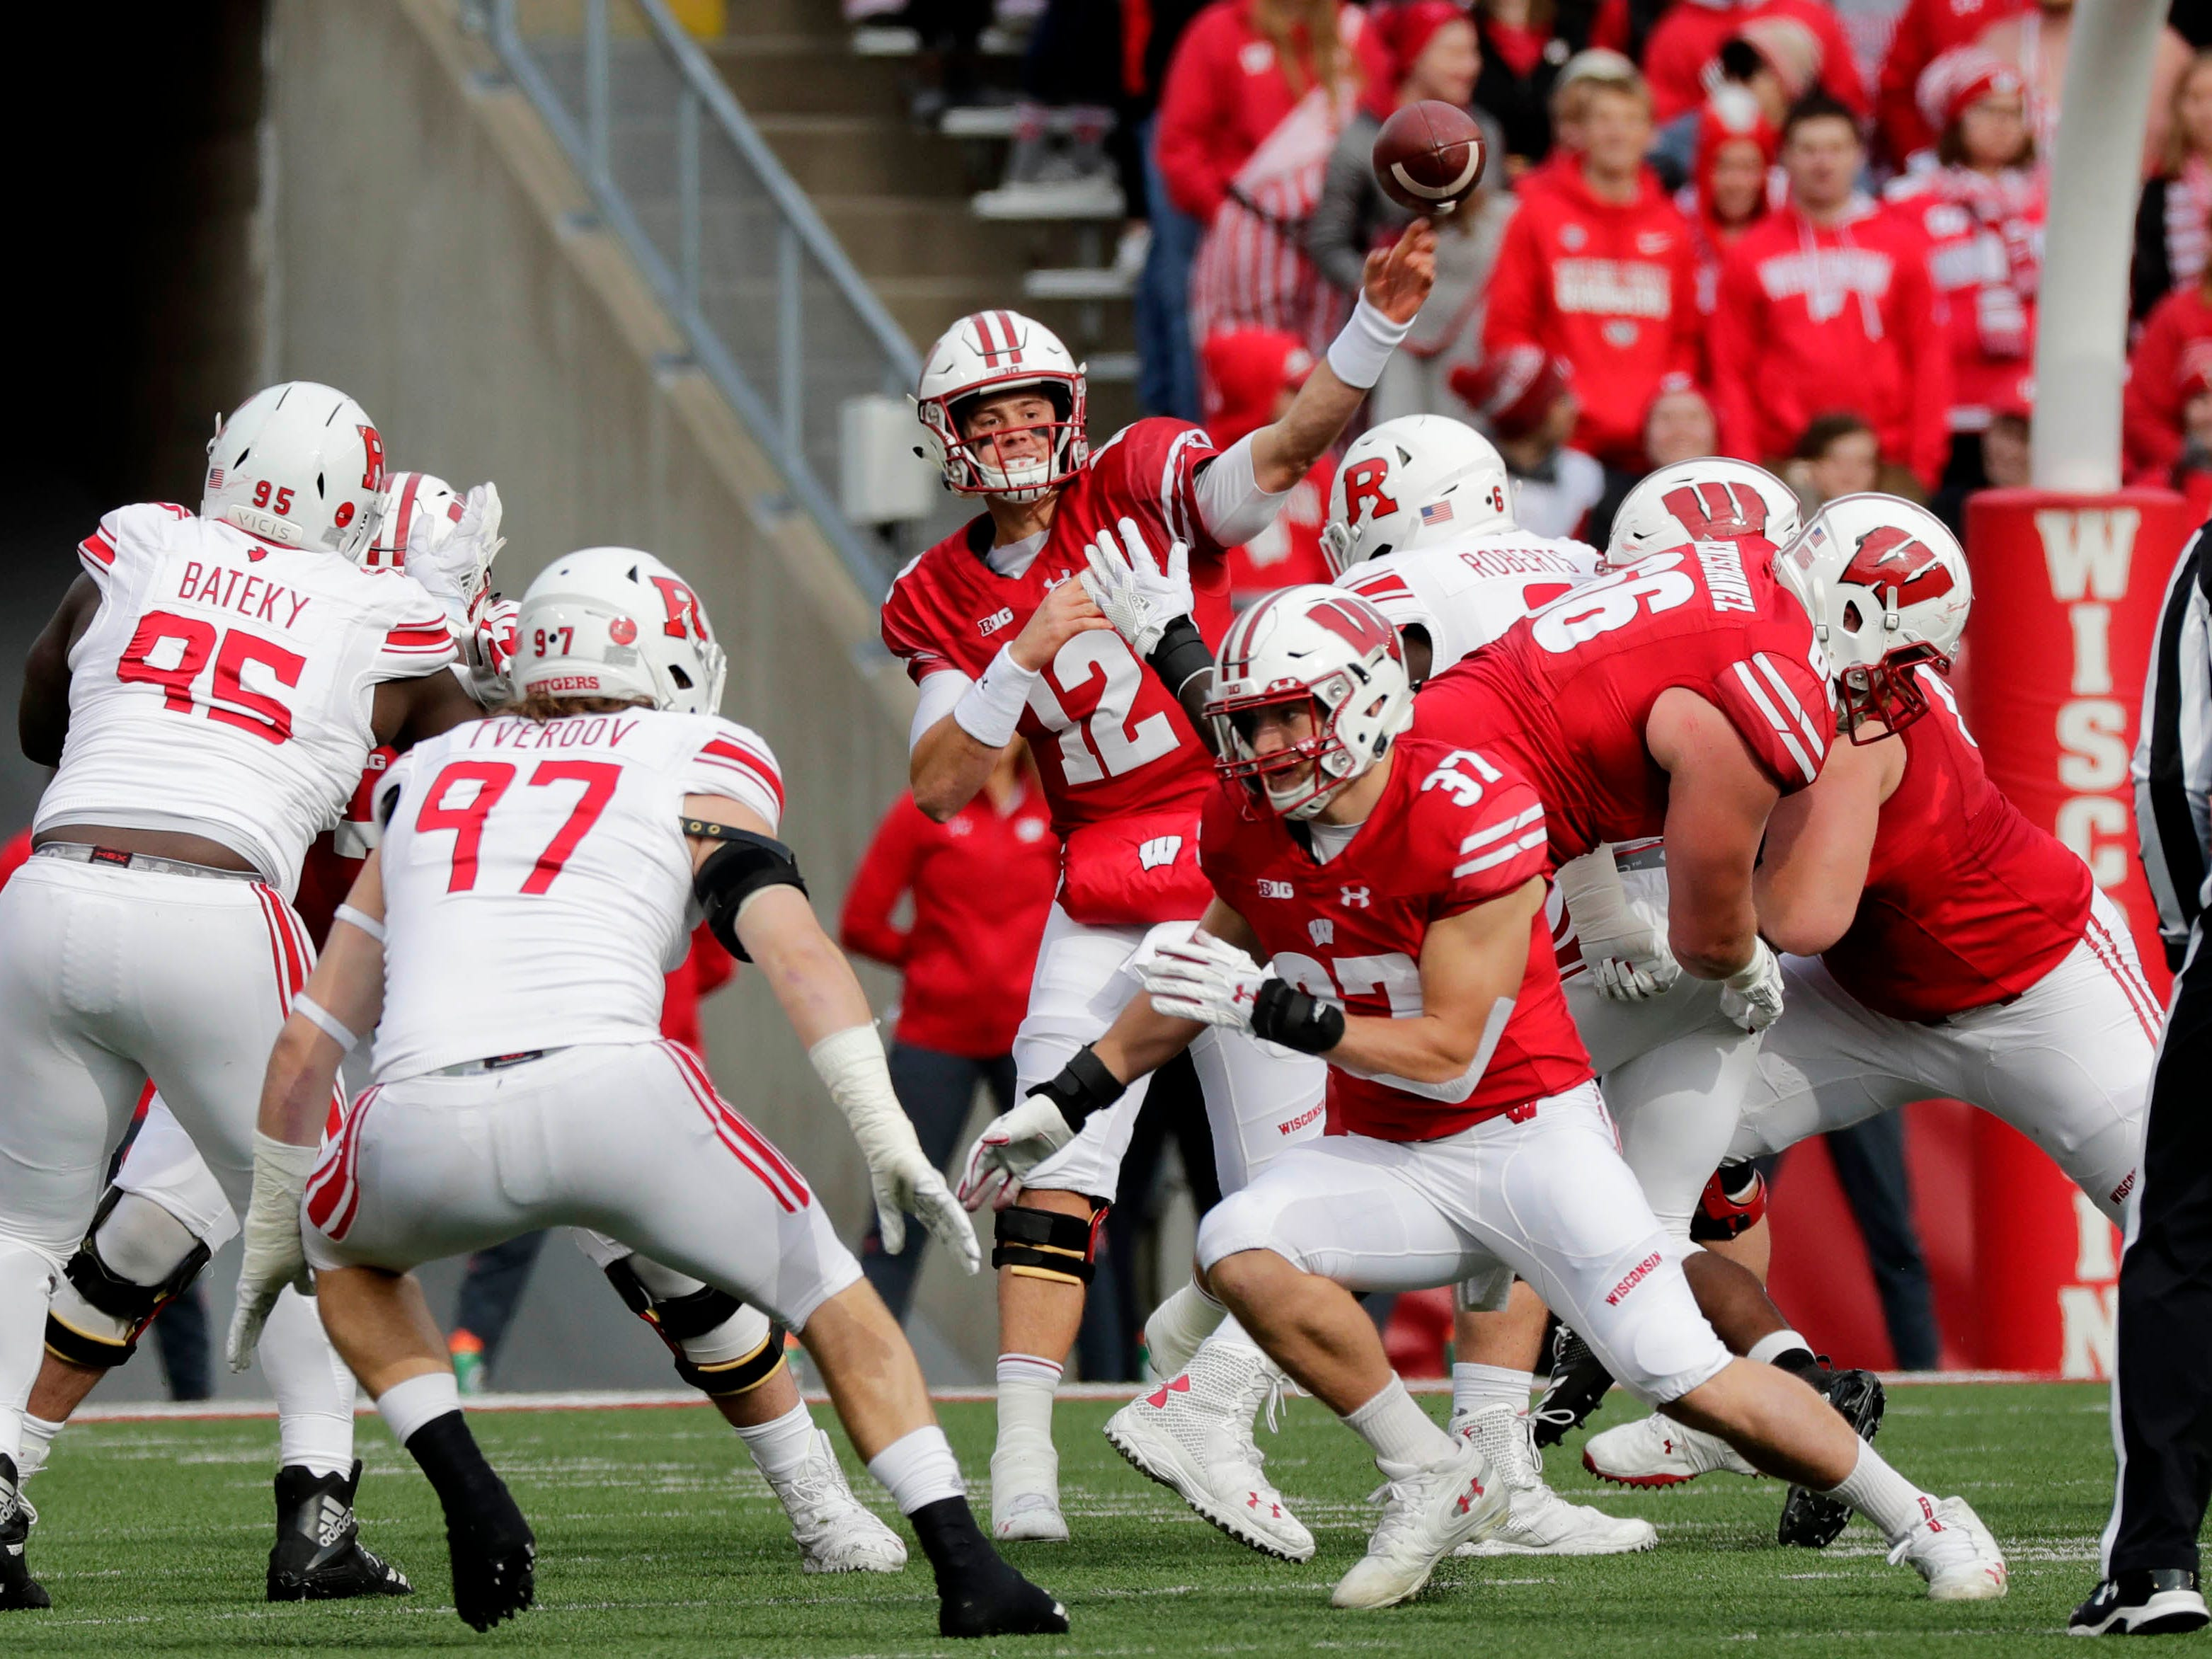 Wisconsin quarterback Alex Hornibrook unleashes a pass the tight end Jake Ferguson (not pictured) will catch for a first down against Rutgers on Saturday.